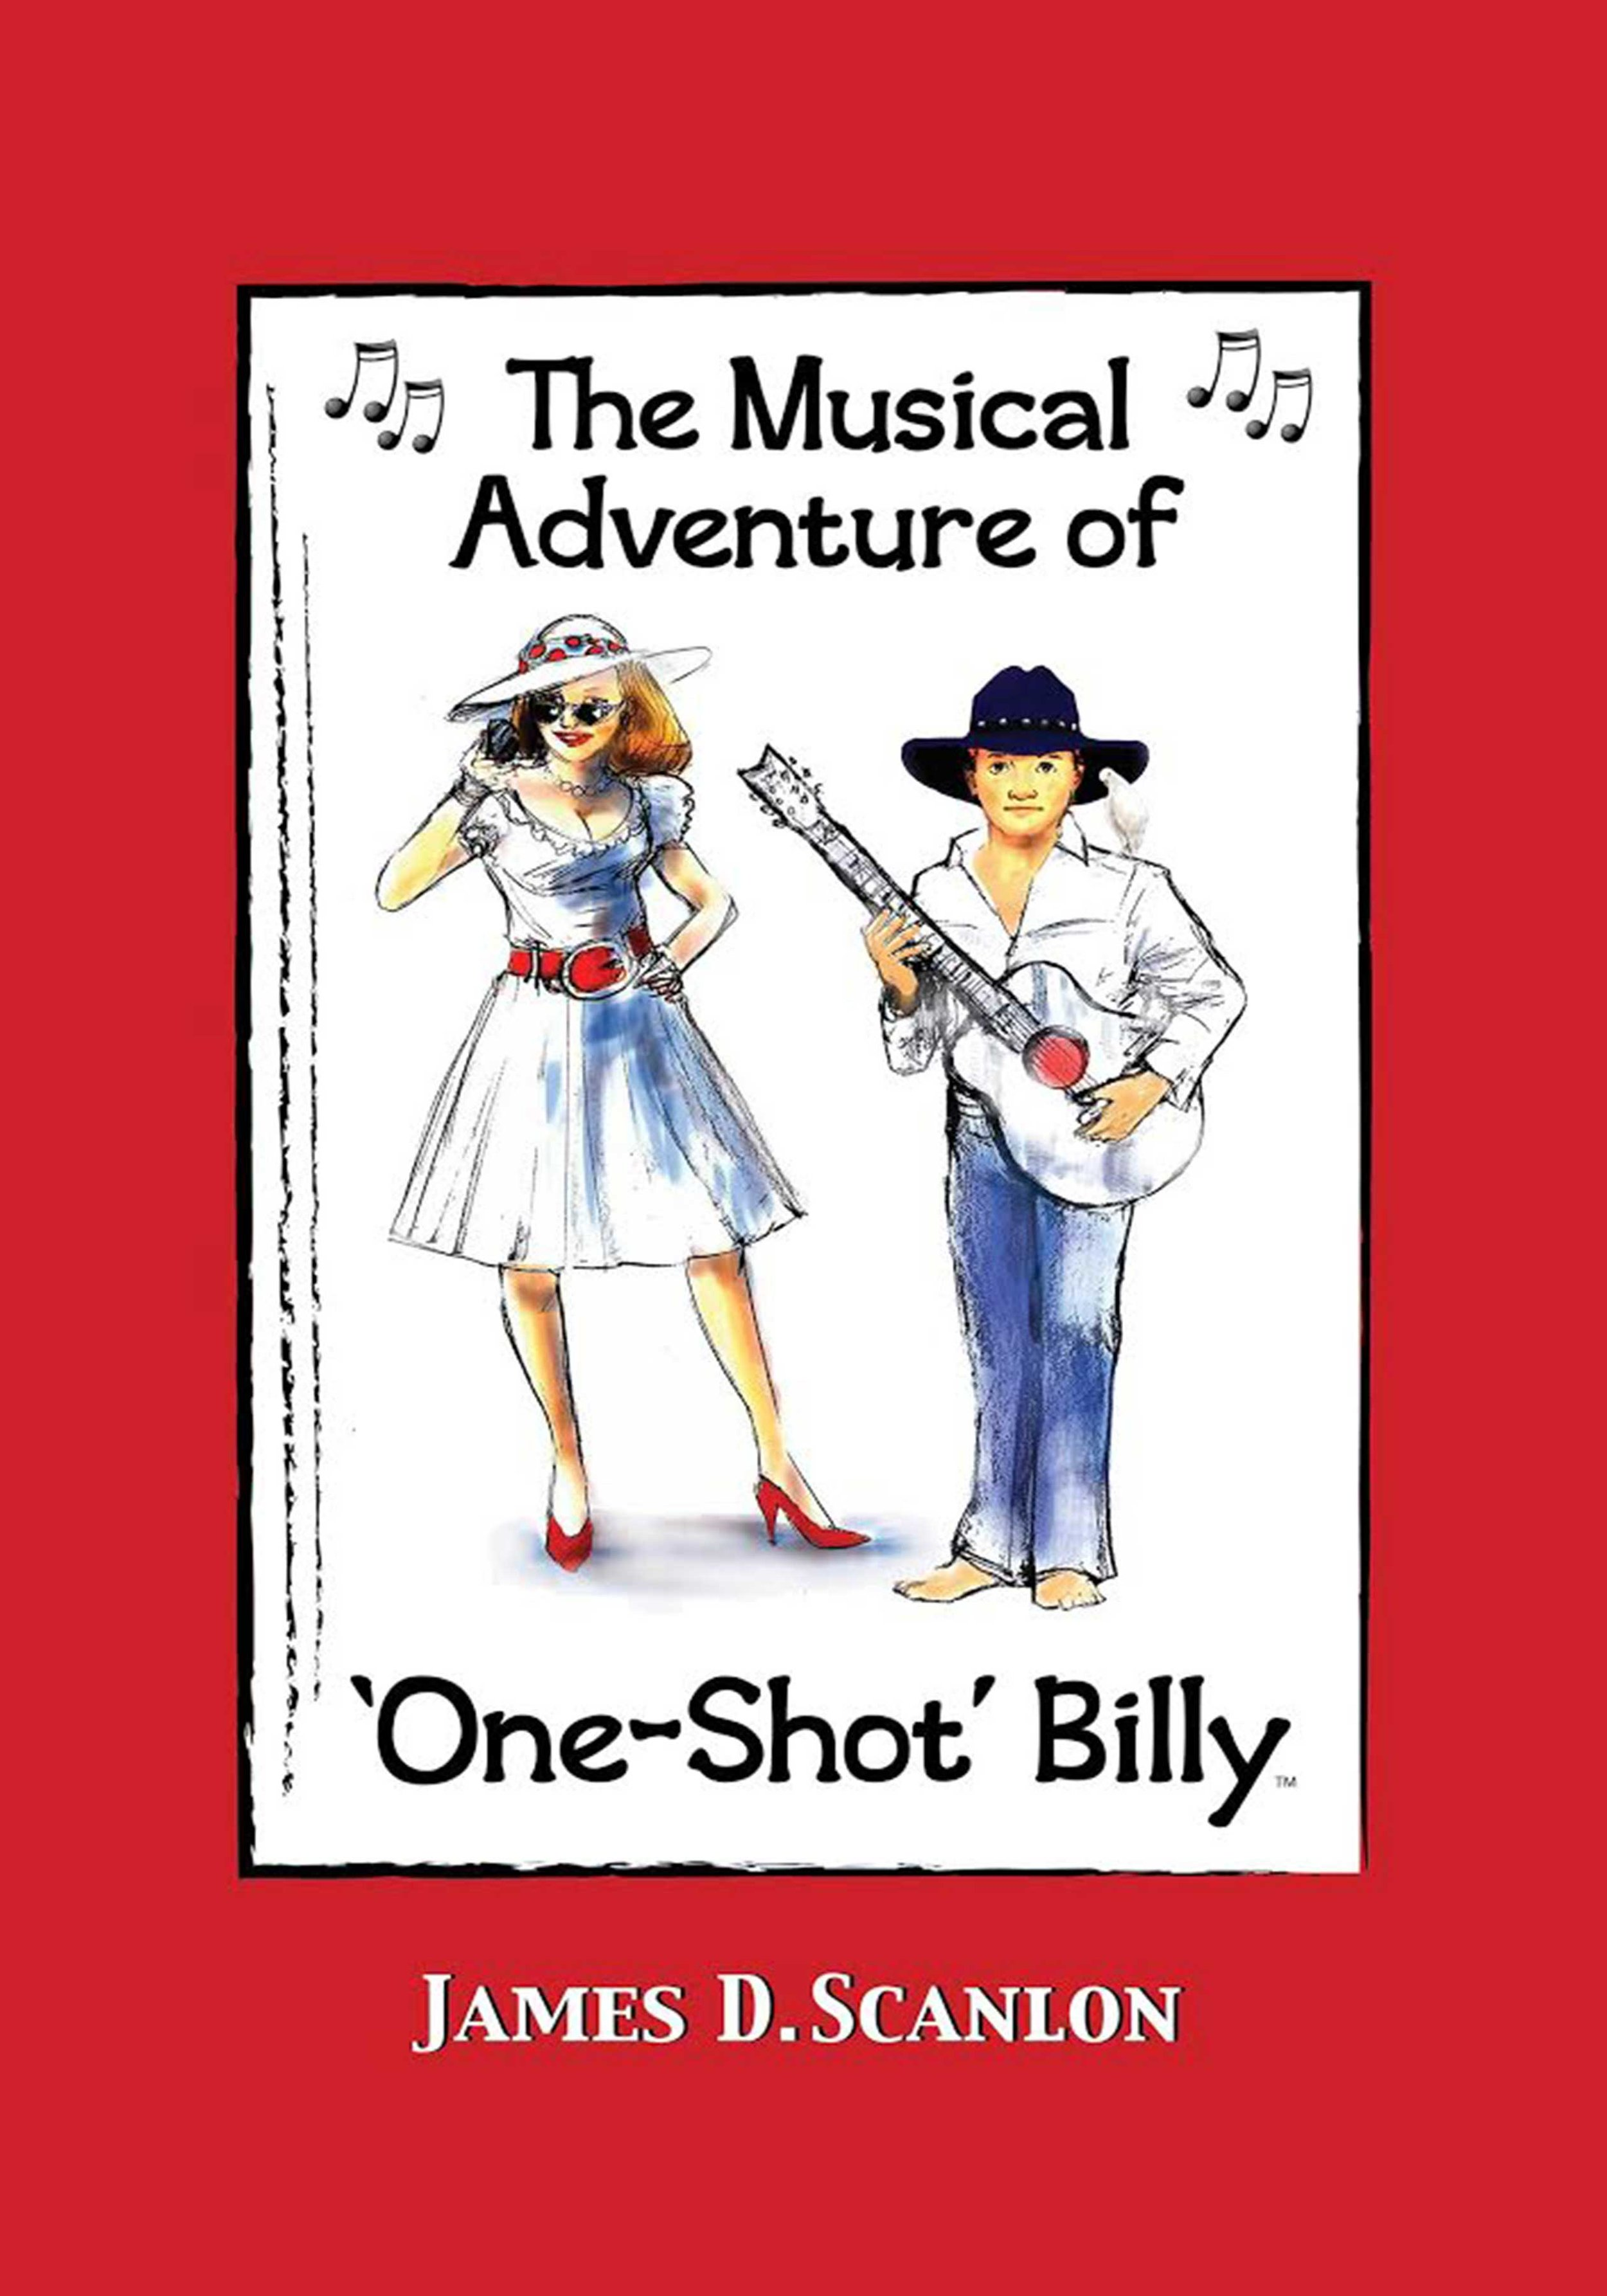 oneshot-billy-book-cover-proof.jpg